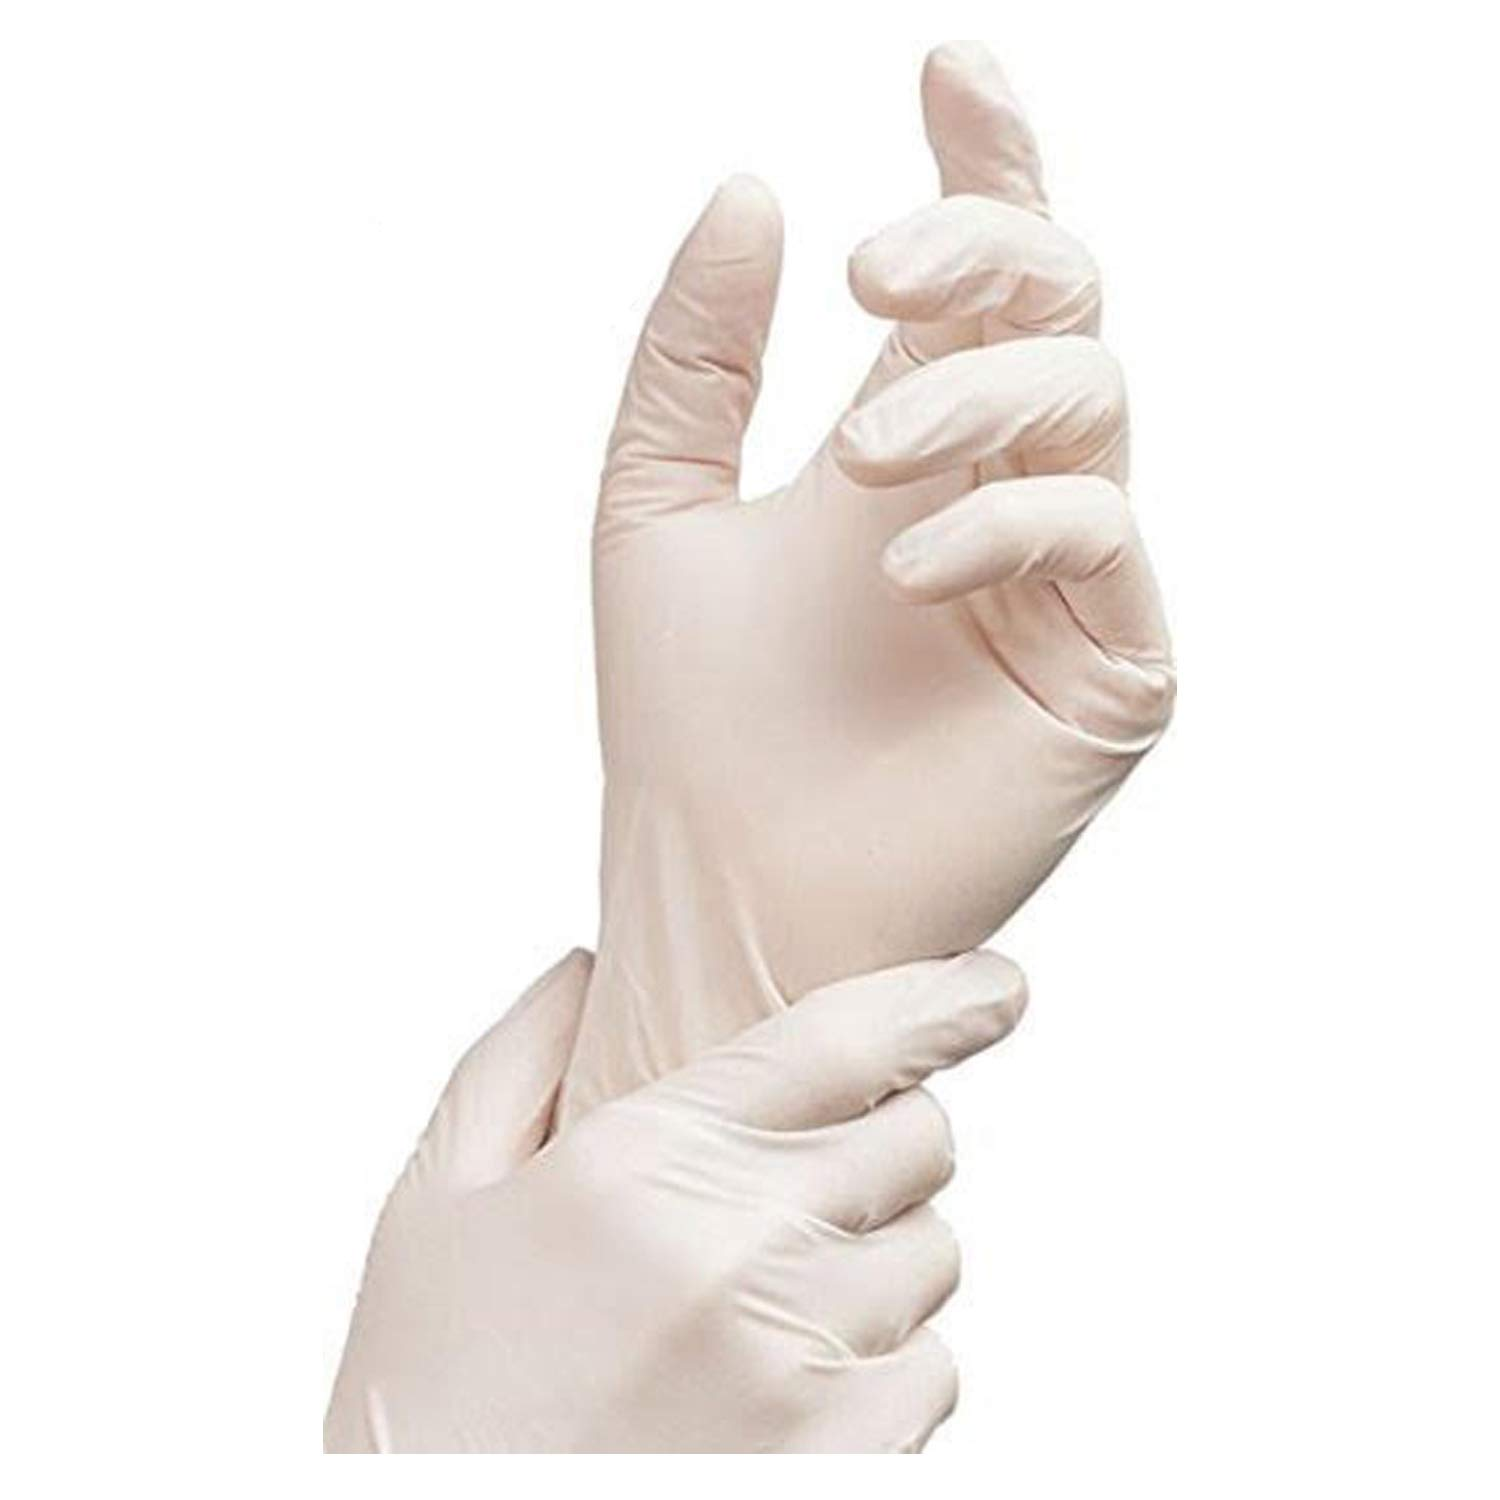 Nitrile Exam Gloves - Medical Grade, Powder Free, Latex Rubber Free, Disposable, Non Sterile, Food Safe, Textured, White Color, 2.5 mil, Convenient Dispenser, Pack of 200, Size Large, AdvanceTouch